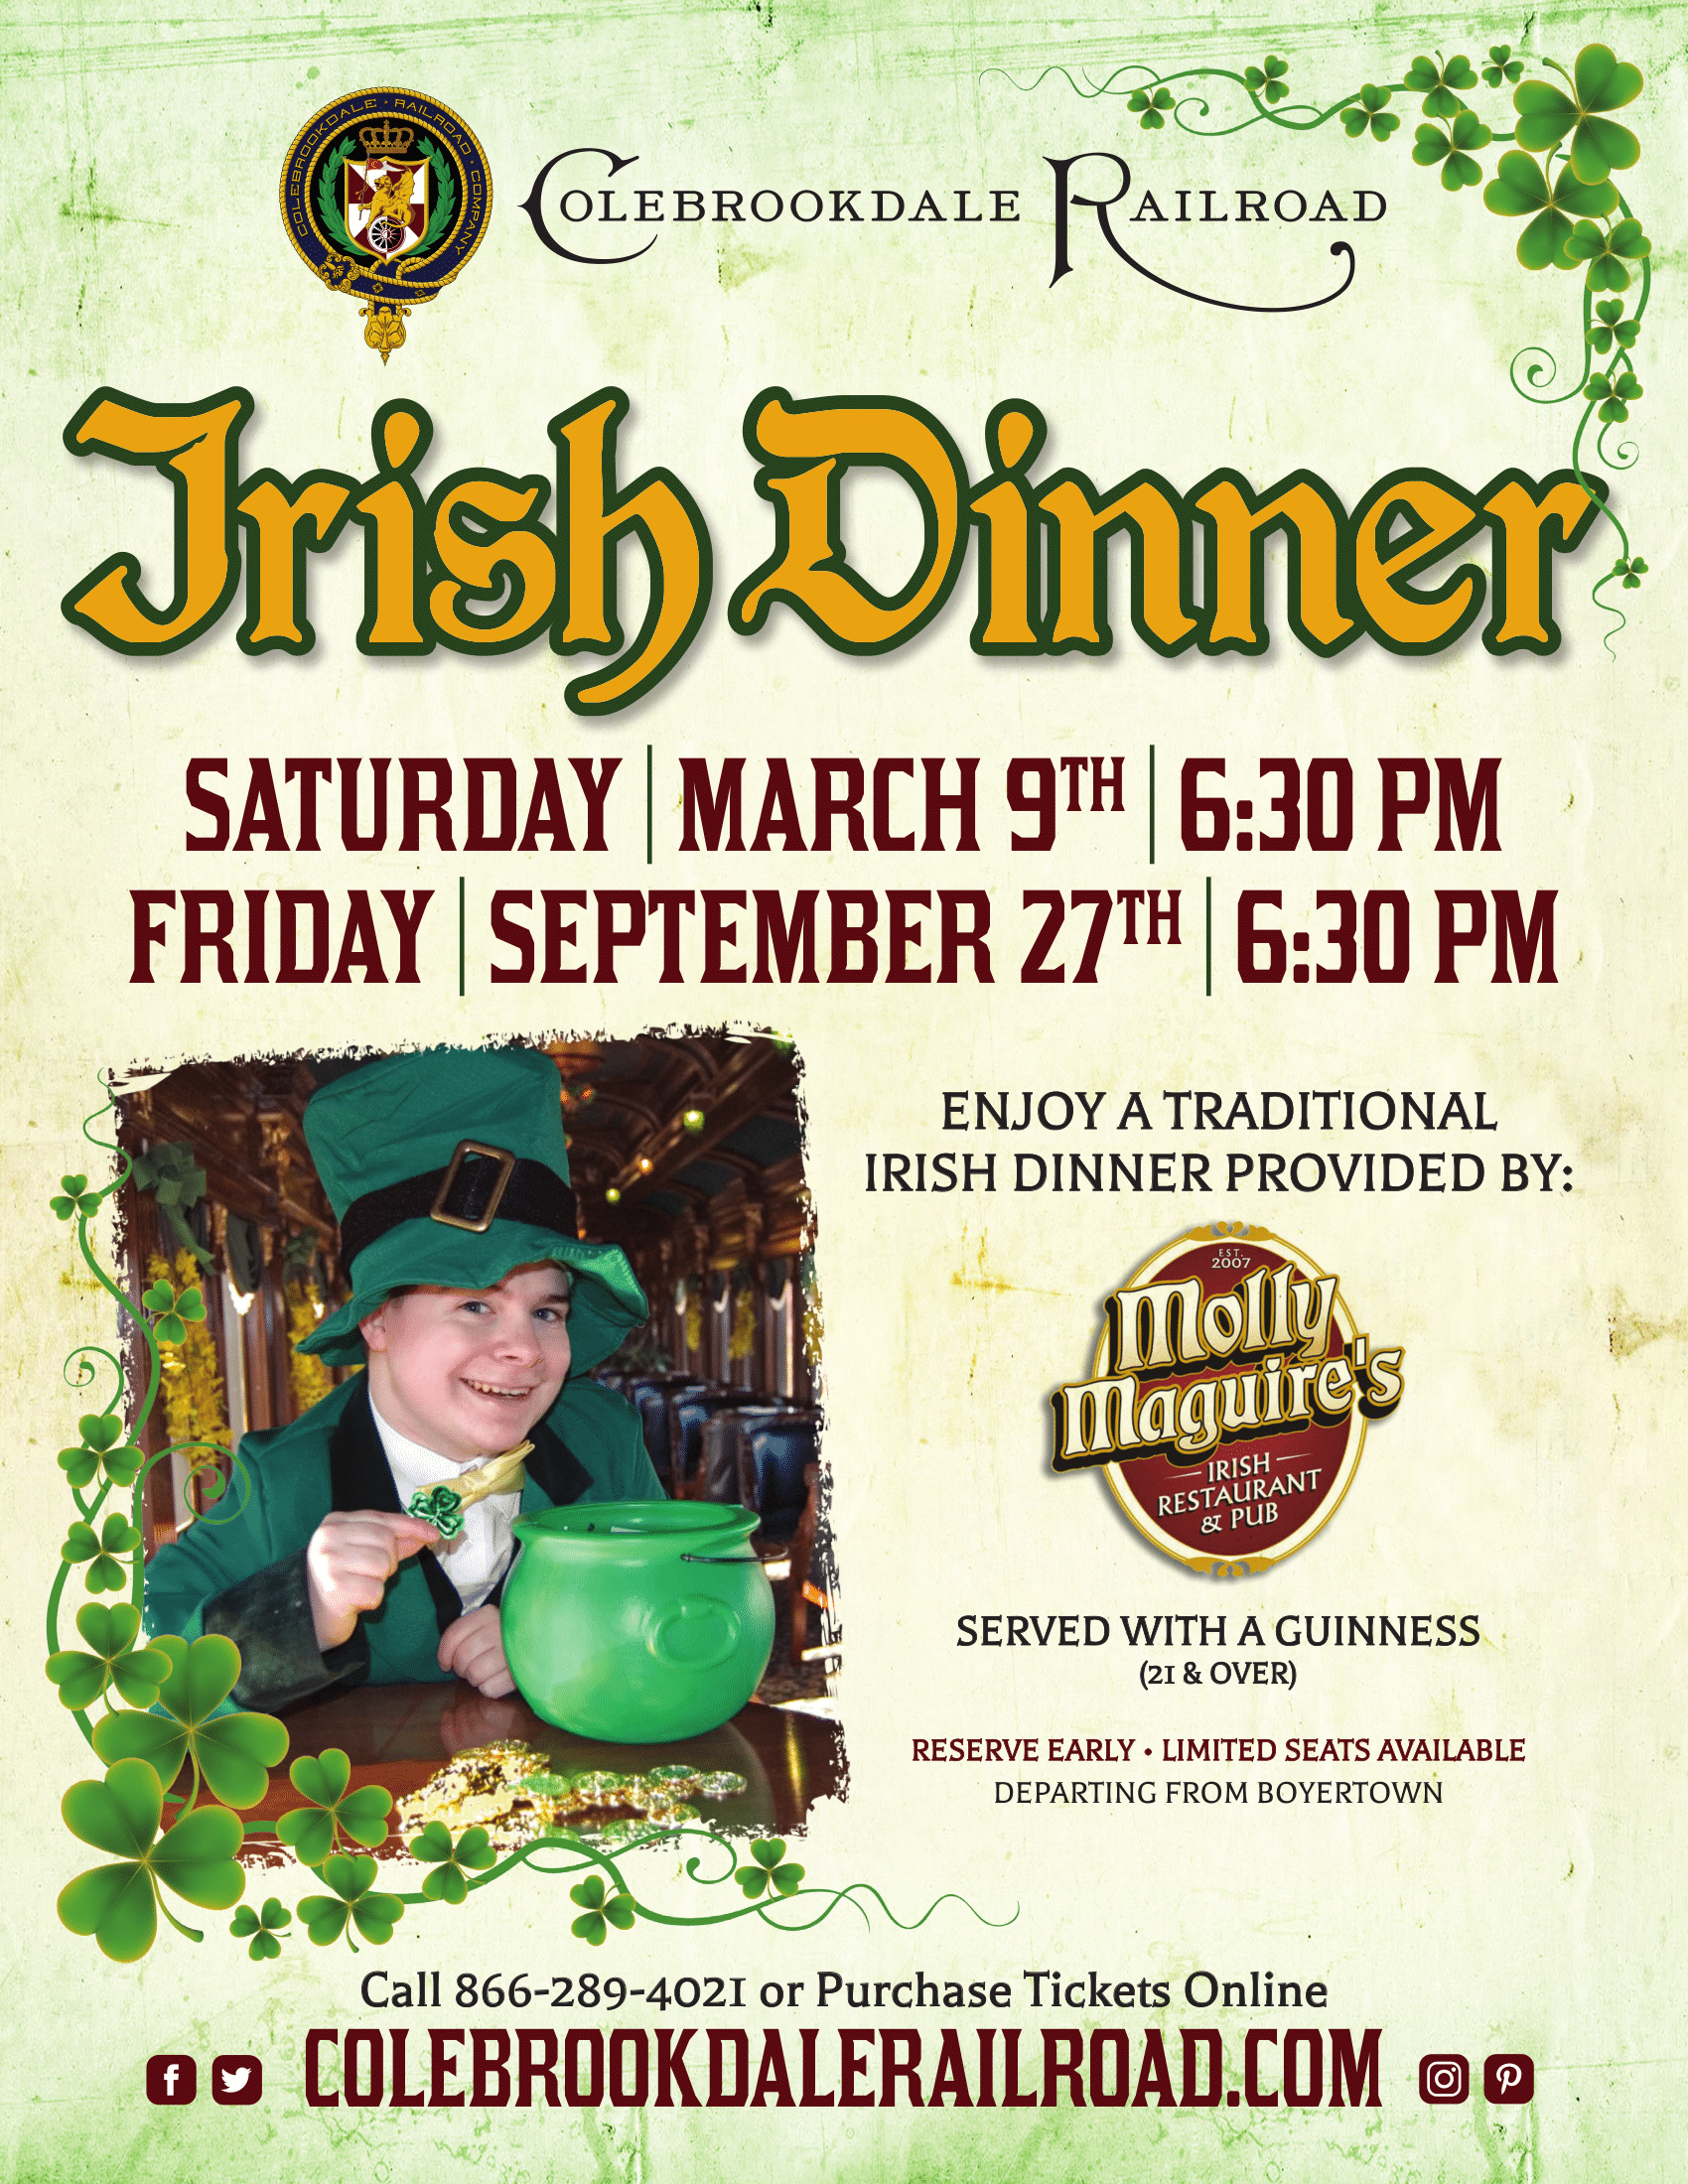 Colebrookdale Railroad Irish Dinner, Saturday, March 9th - 6:30 PM. Friday, September 27th, 6:30 PM Enjoy a traditional Irish Dinner Provided By: Molly Maguire's Irish Restaurant & Pub. Served with a Guinness (21 & Over) Reserve Early - Limited Seats Available Departing from Boyertown. Call 866-289-4021 or Purchase tickets online colebrookdalerailroad.com